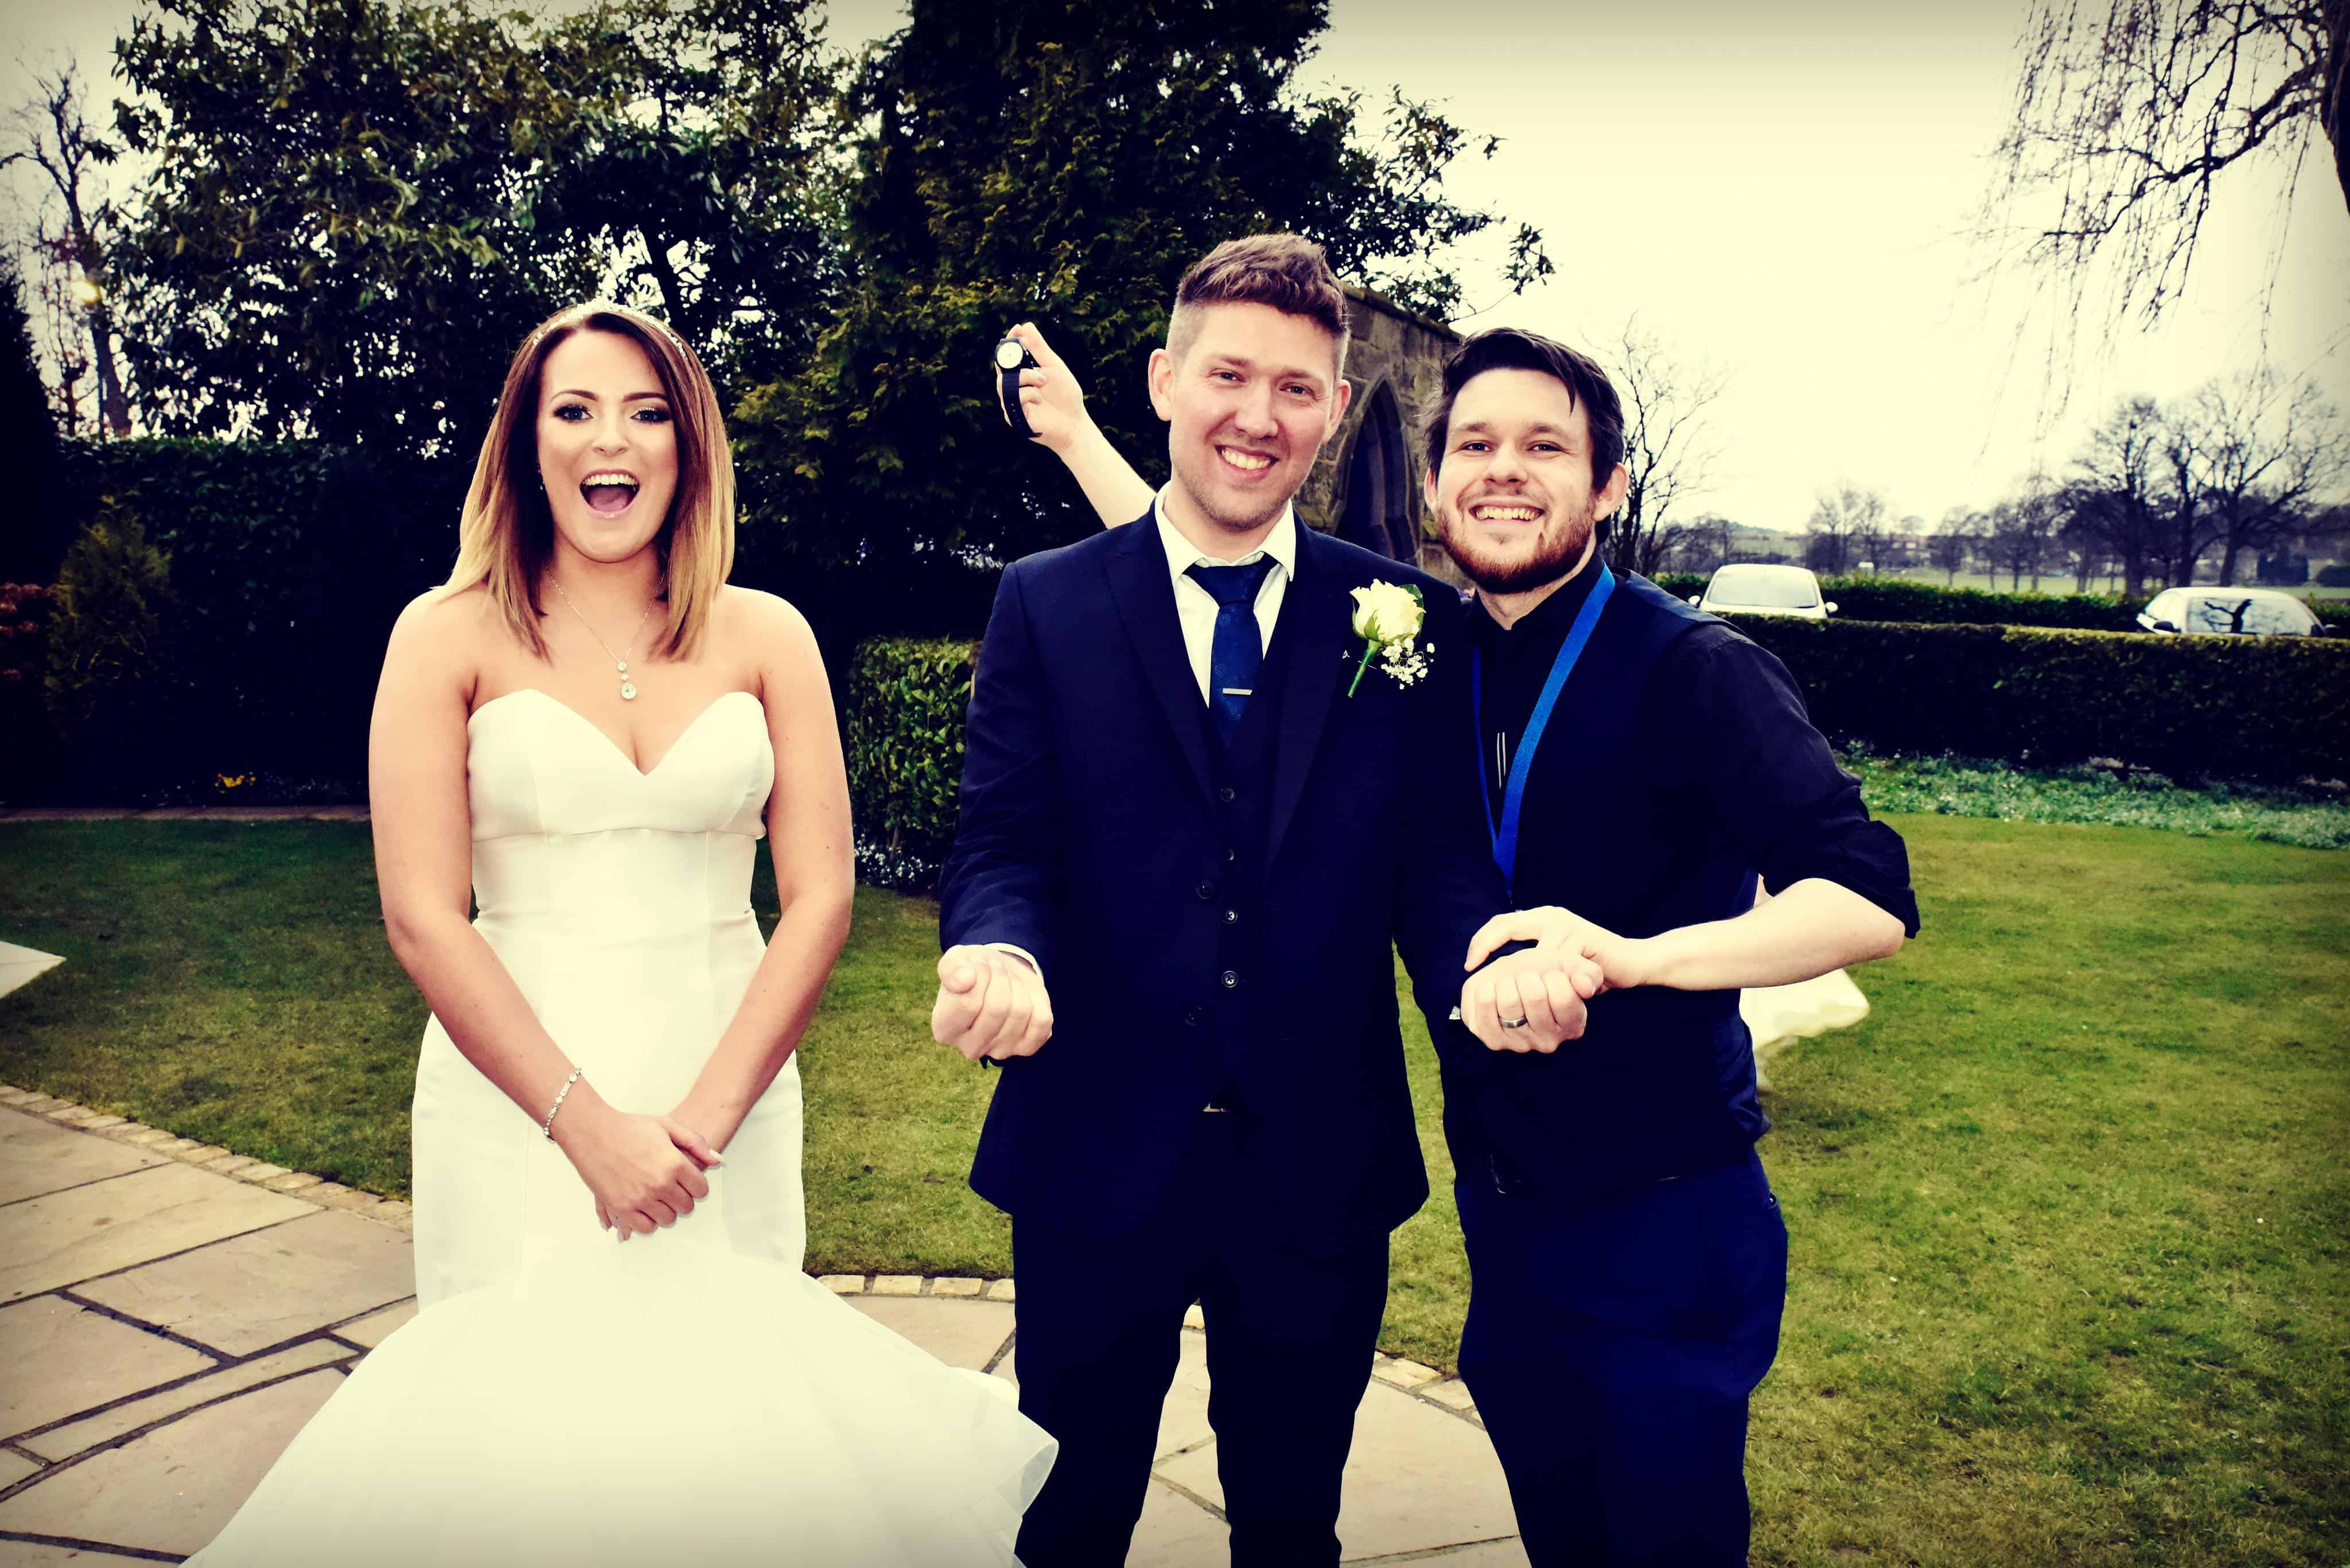 Professional Magician Greg Holroyd performing a small stand-up show for the Bride and Groom on their wedding day